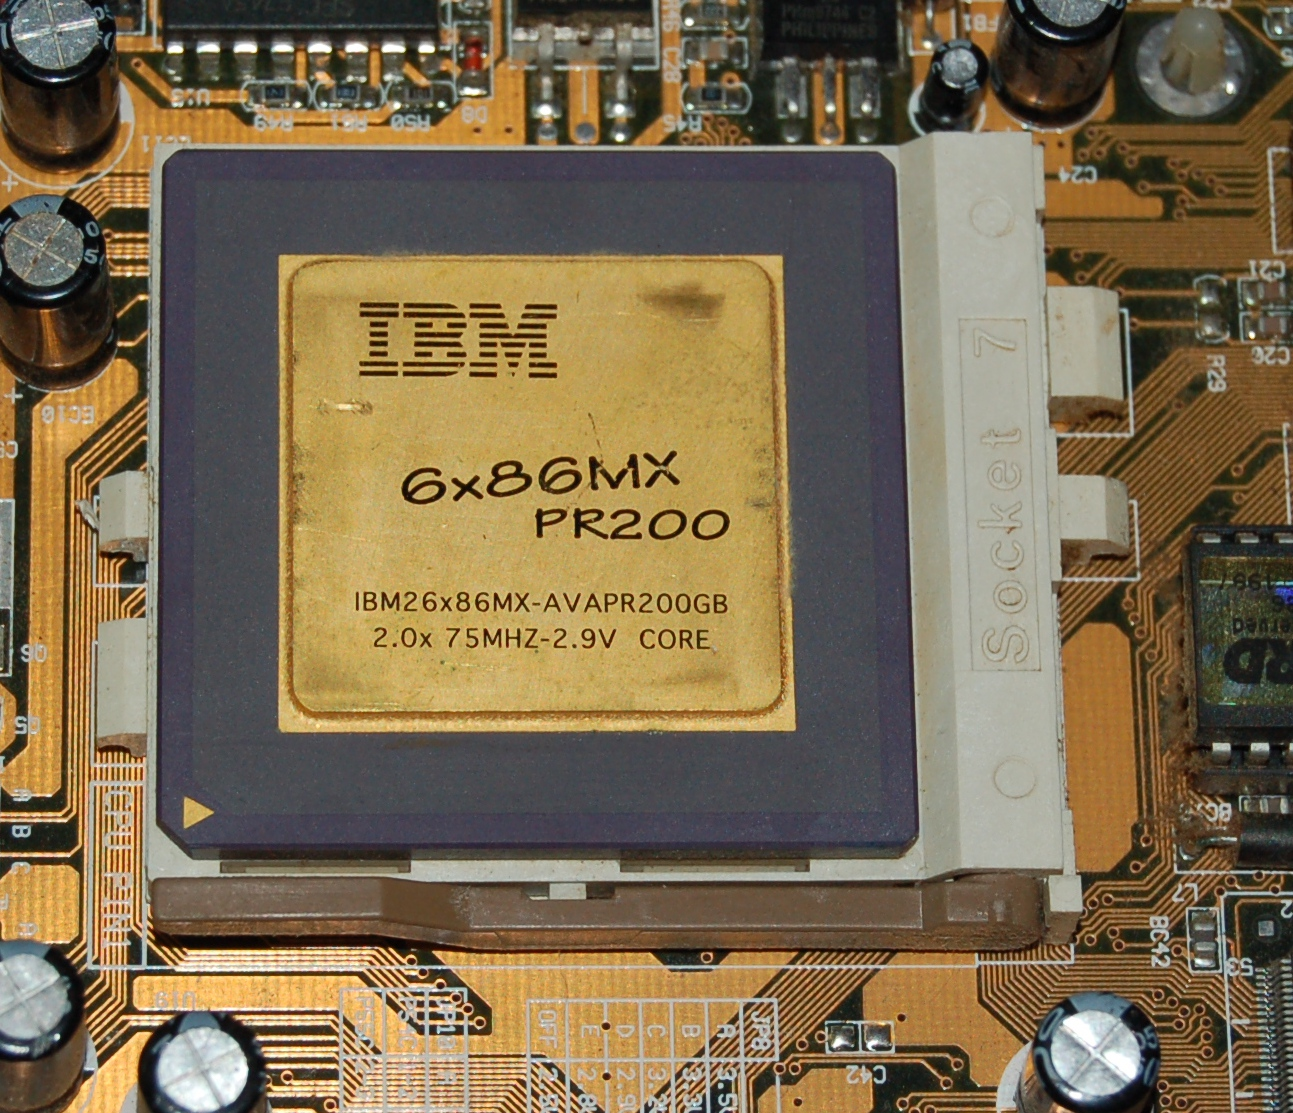 Vintage Socket-7 x86 Motherboard with IBM 6x86MX-PR200 CPU & RAM